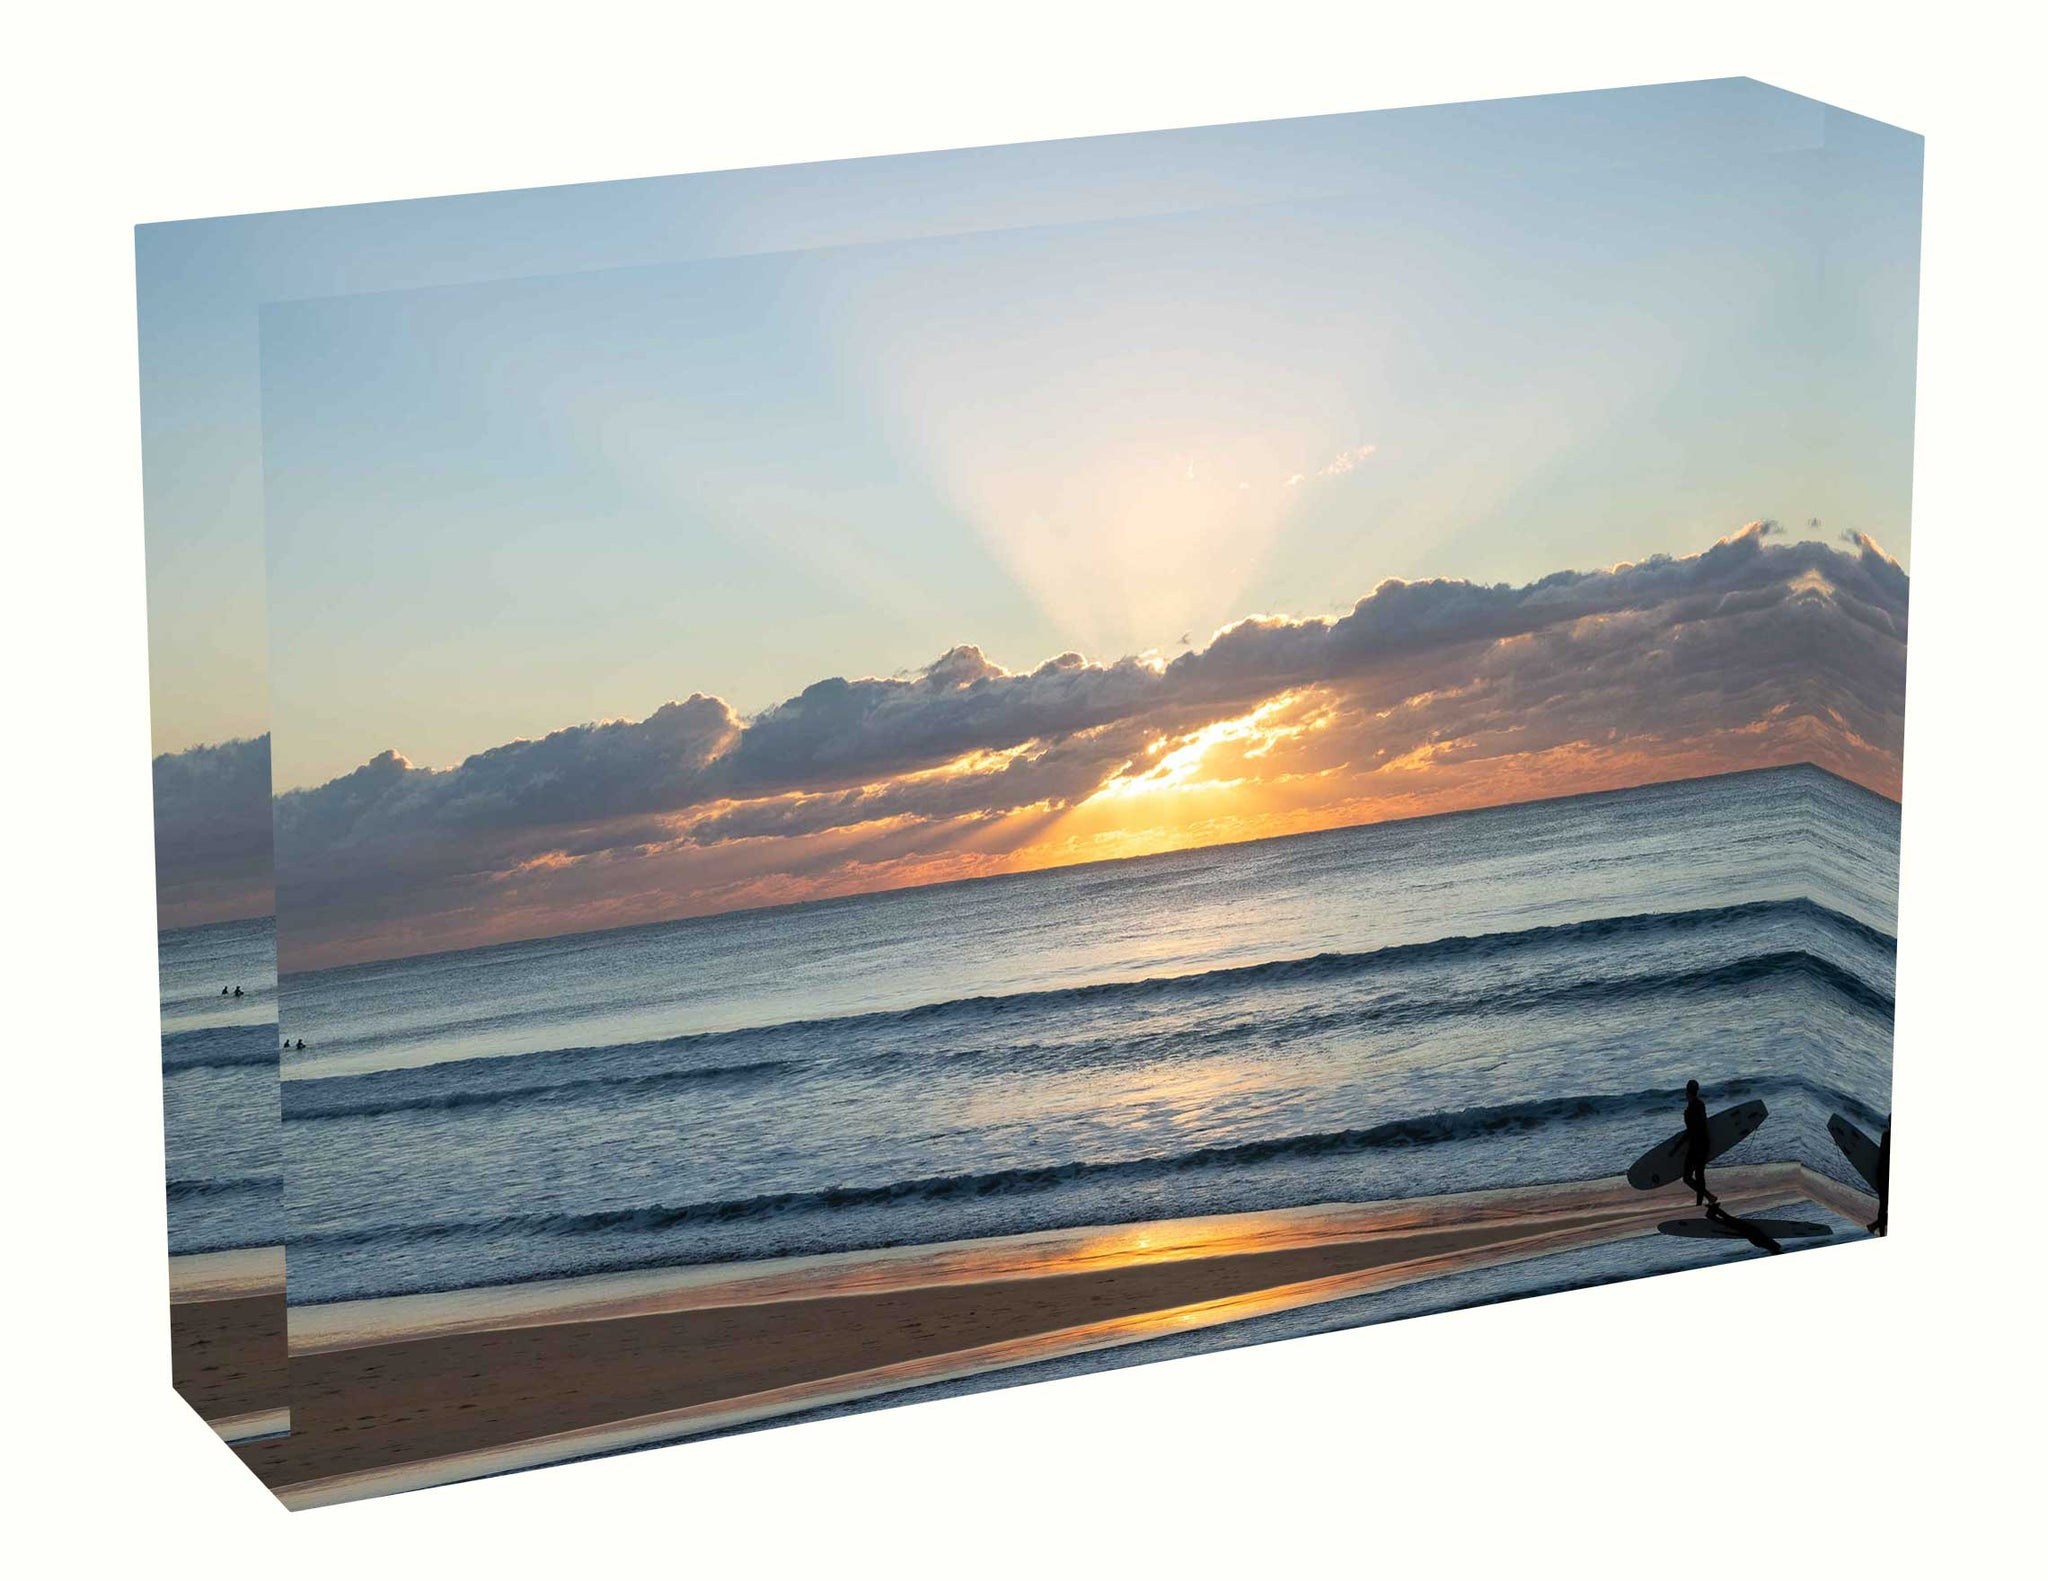 Acrylic block sunrise photo from 6th June 2020 at Manly beach, Sydney